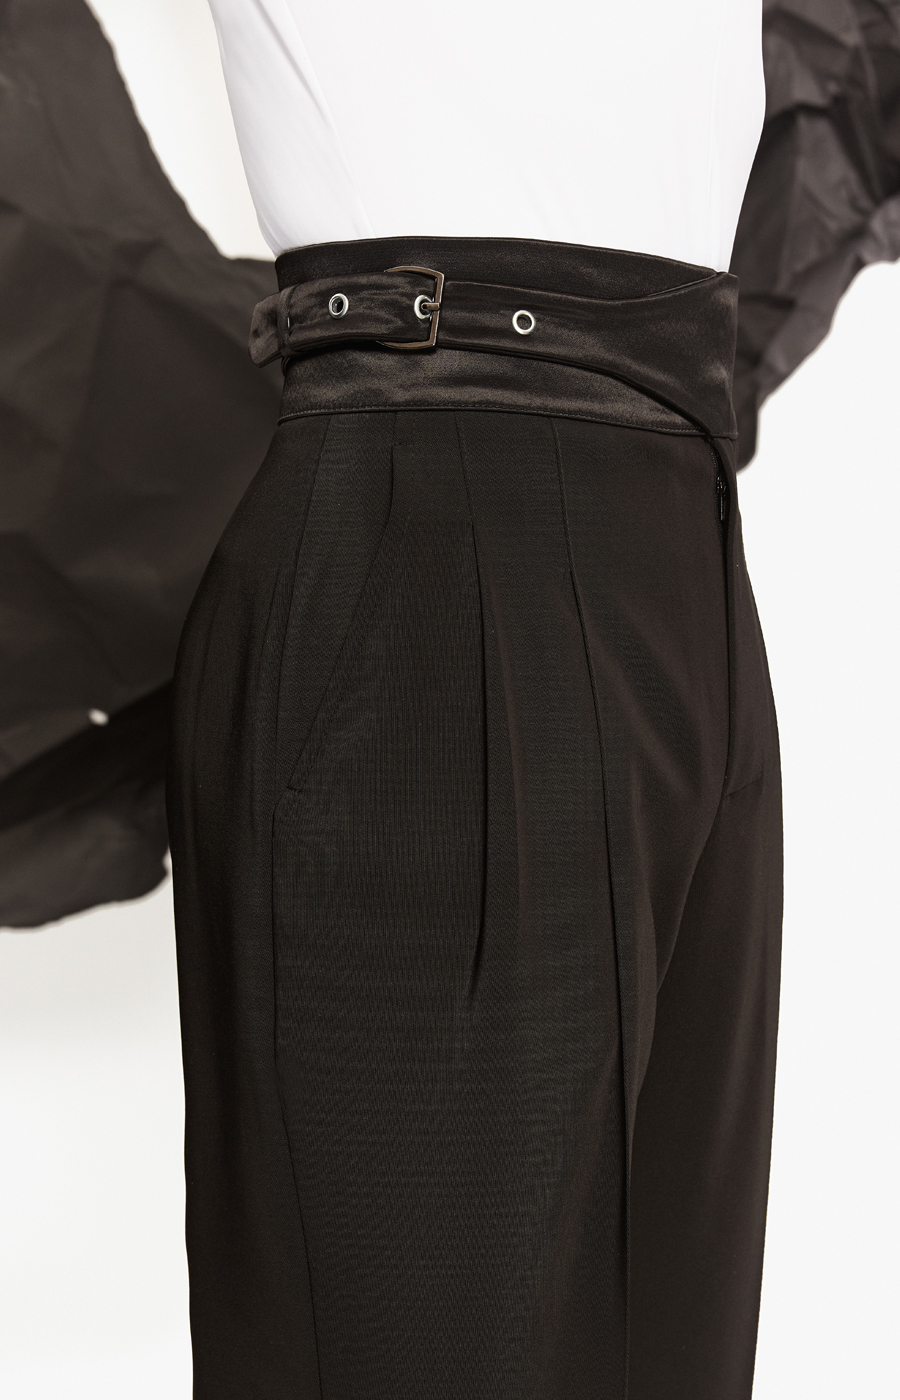 Junior latin trouser with buckle detail